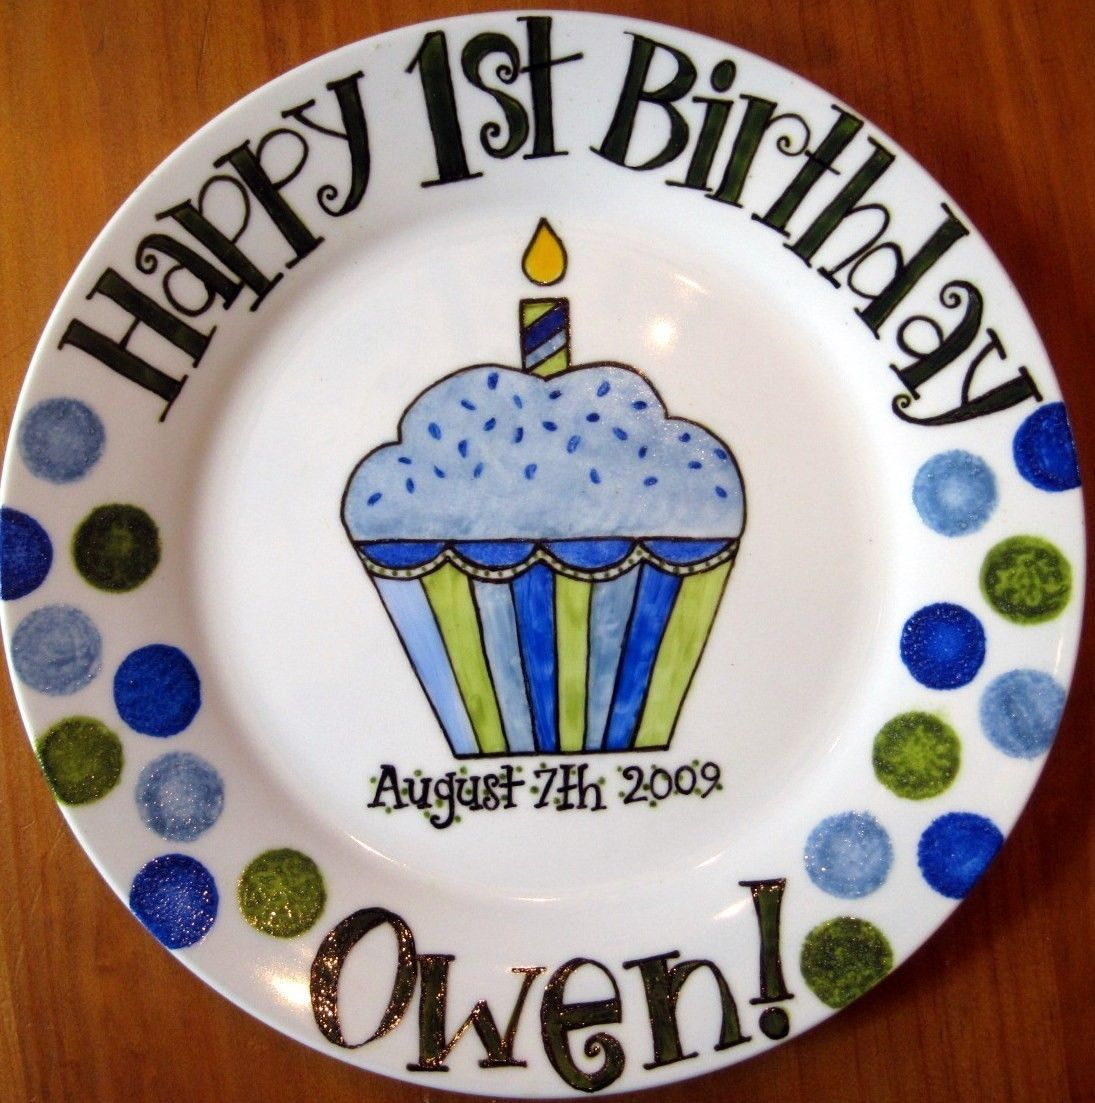 Happy Birthday Plates Hand Painted Personalized . First Birthday or Baby Gift for Boy  sc 1 st  Pinterest & Happy Birthday Plates Hand Painted Personalized . First Birthday or ...